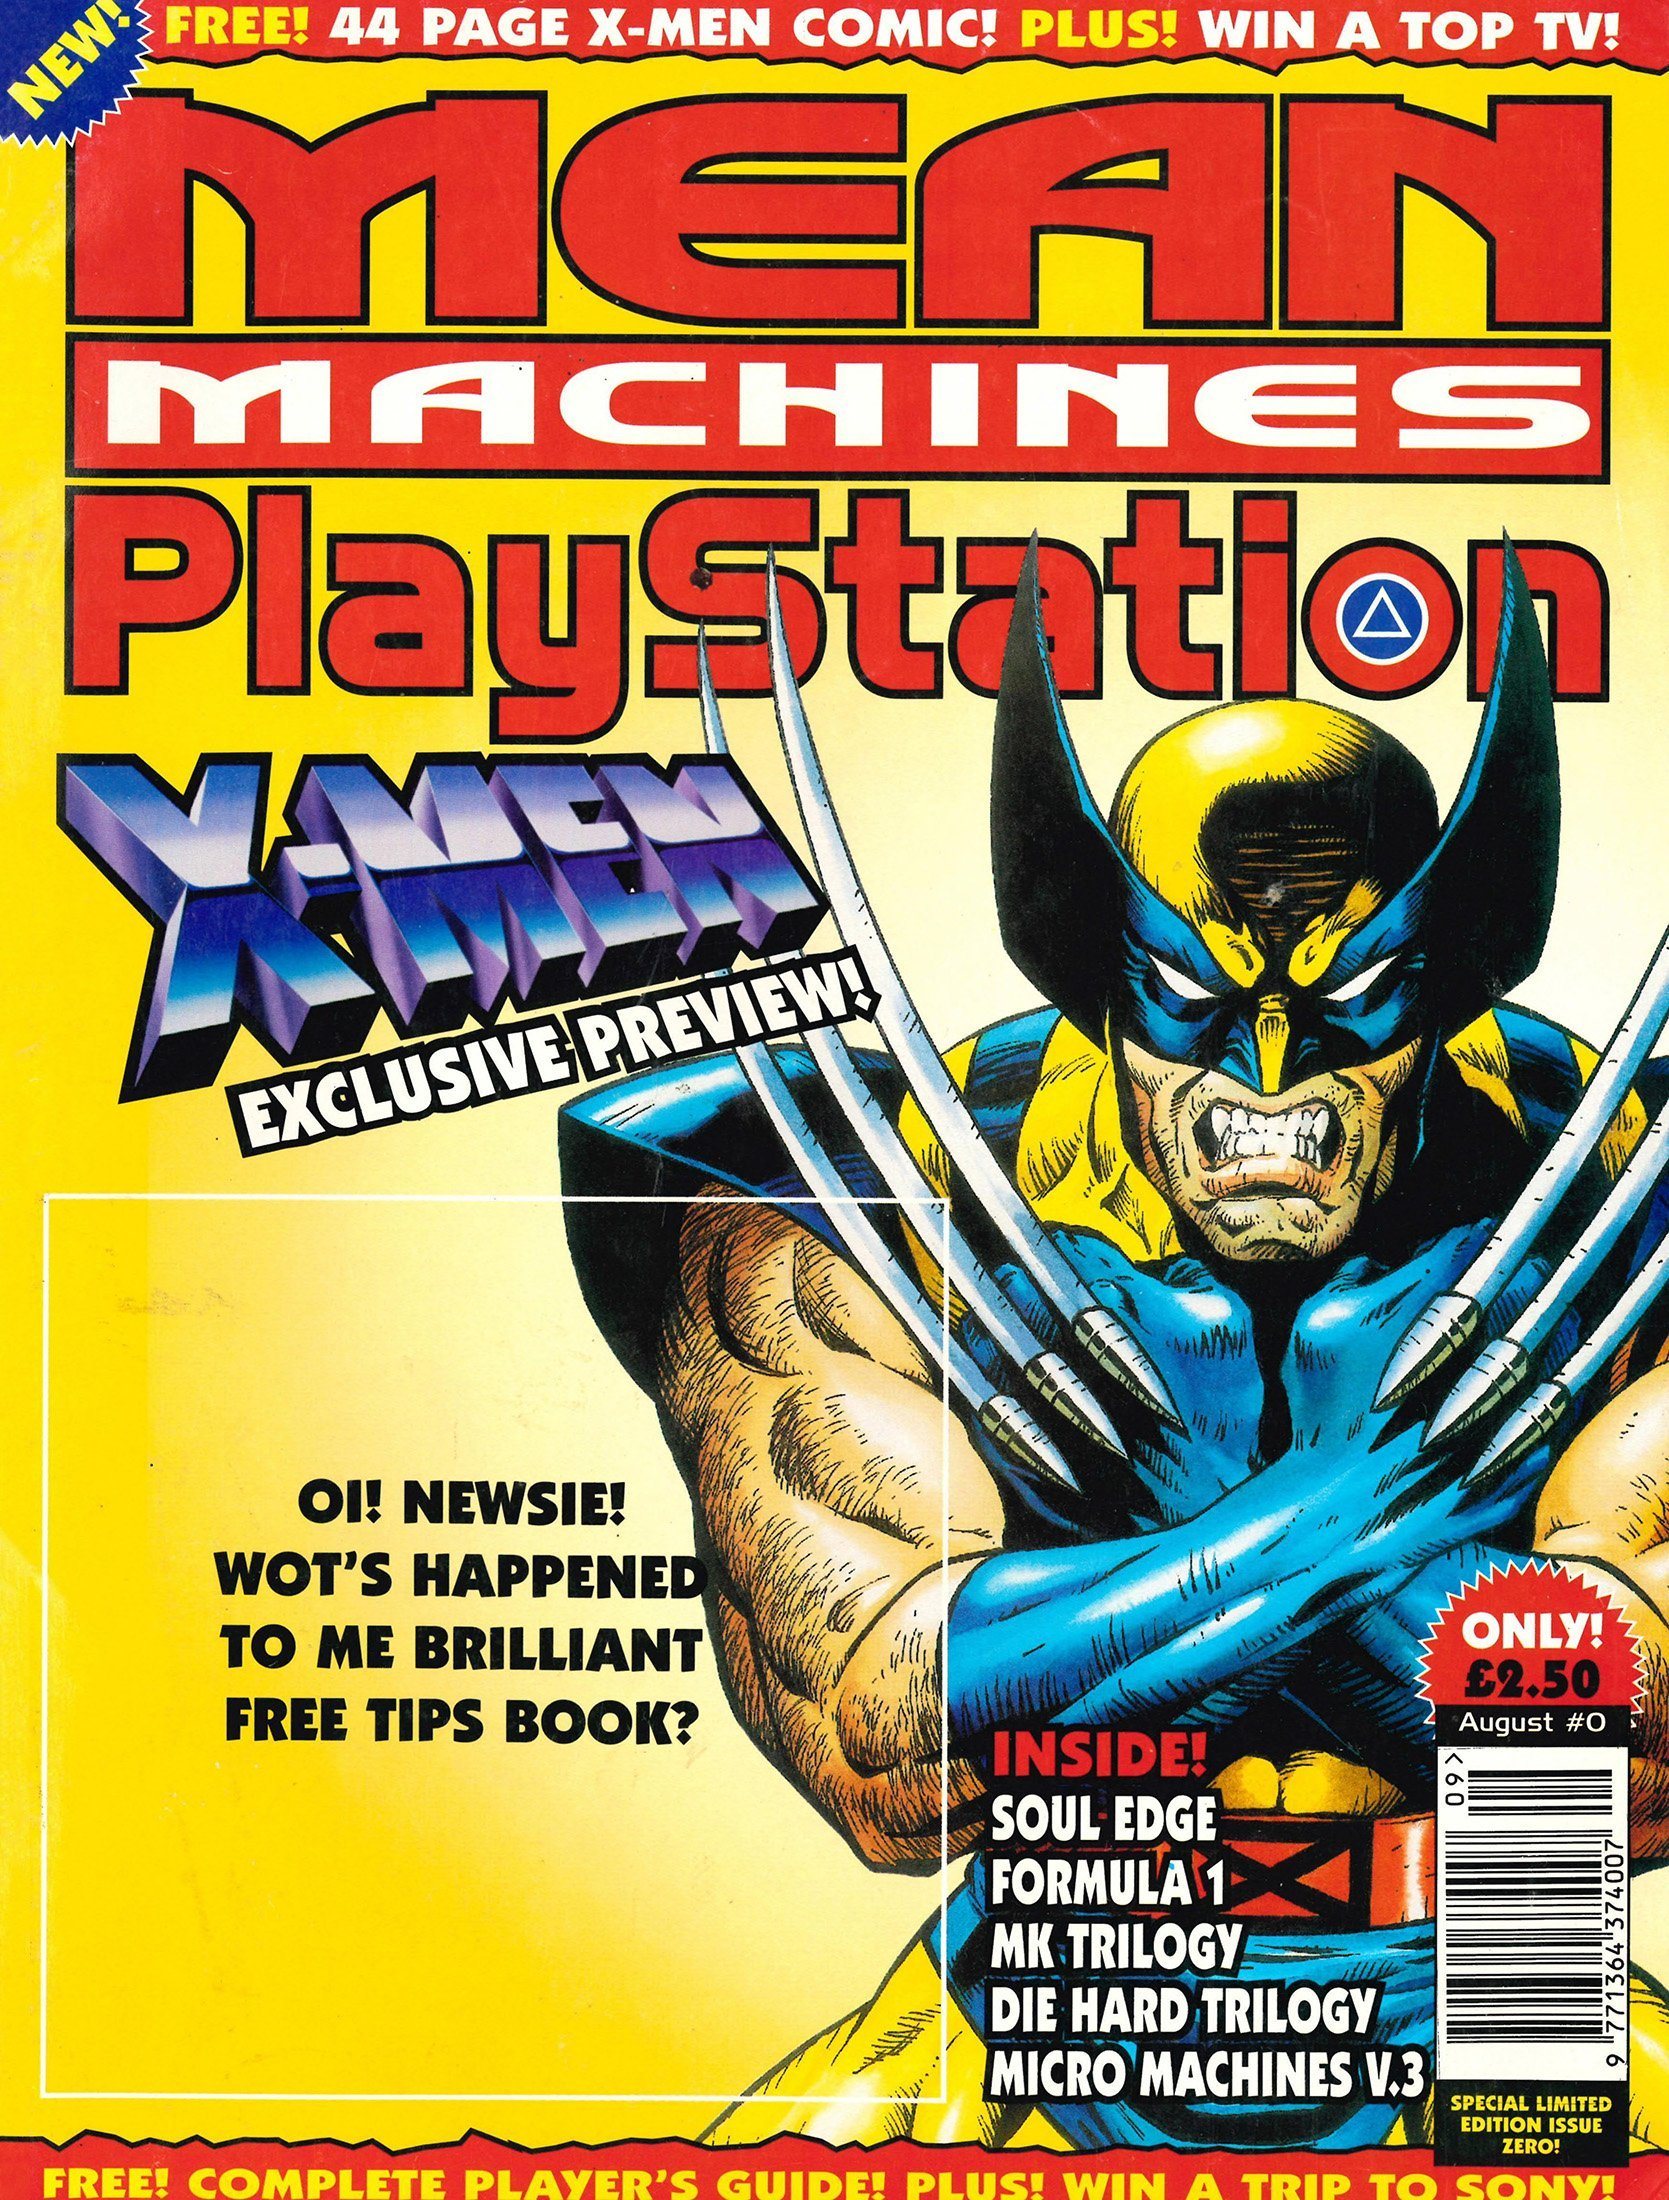 Mean Machines Playstation 00 (August 1996)